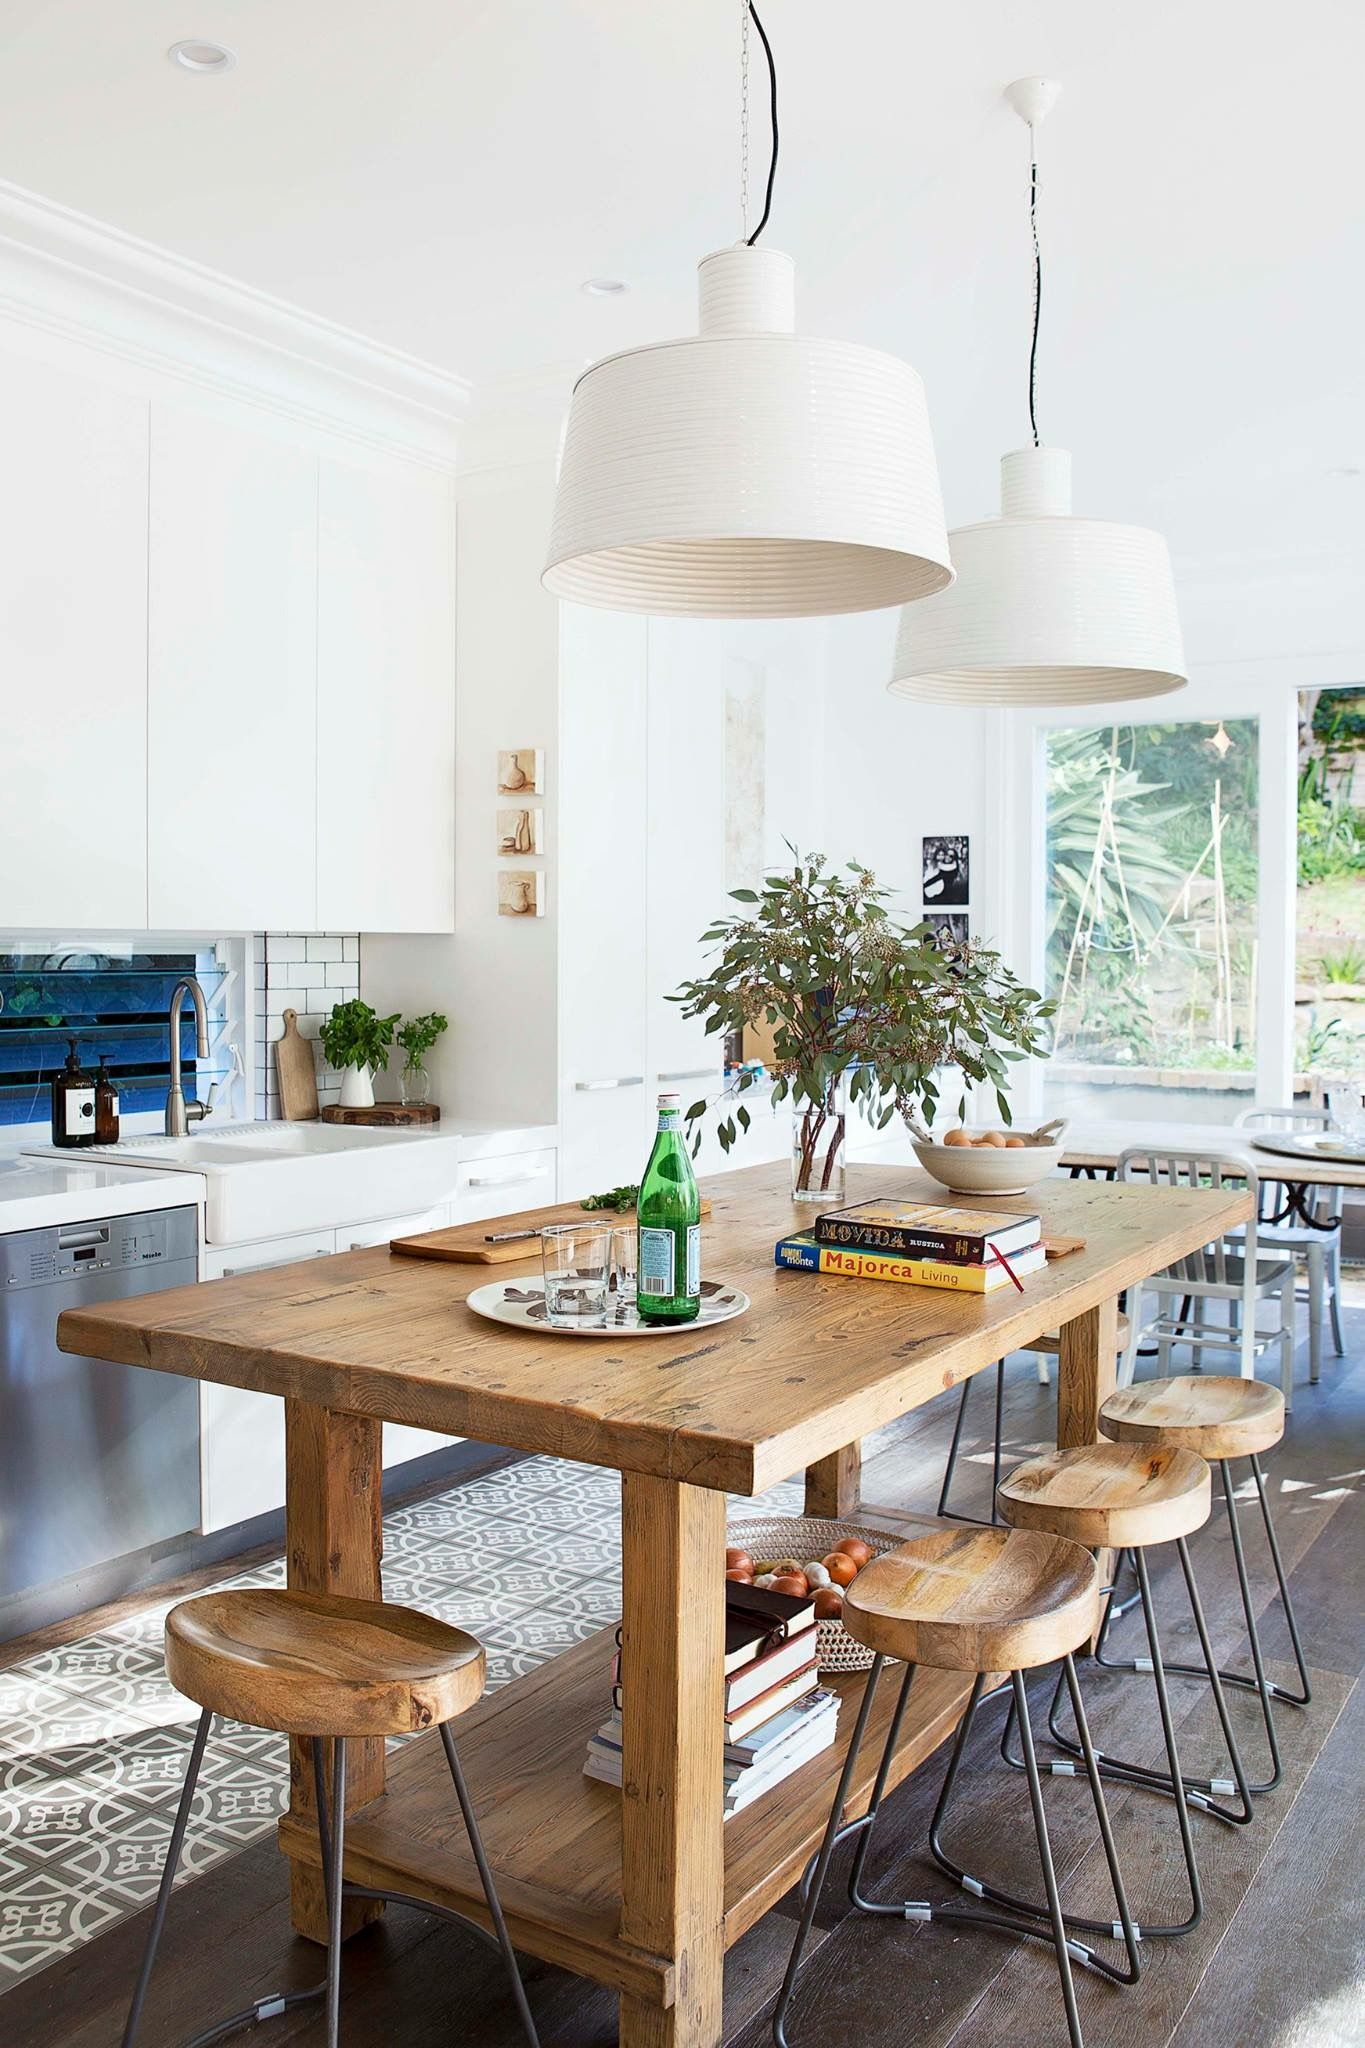 Beachy Kitchen ideas//wooden table and chairs | decoracion ...